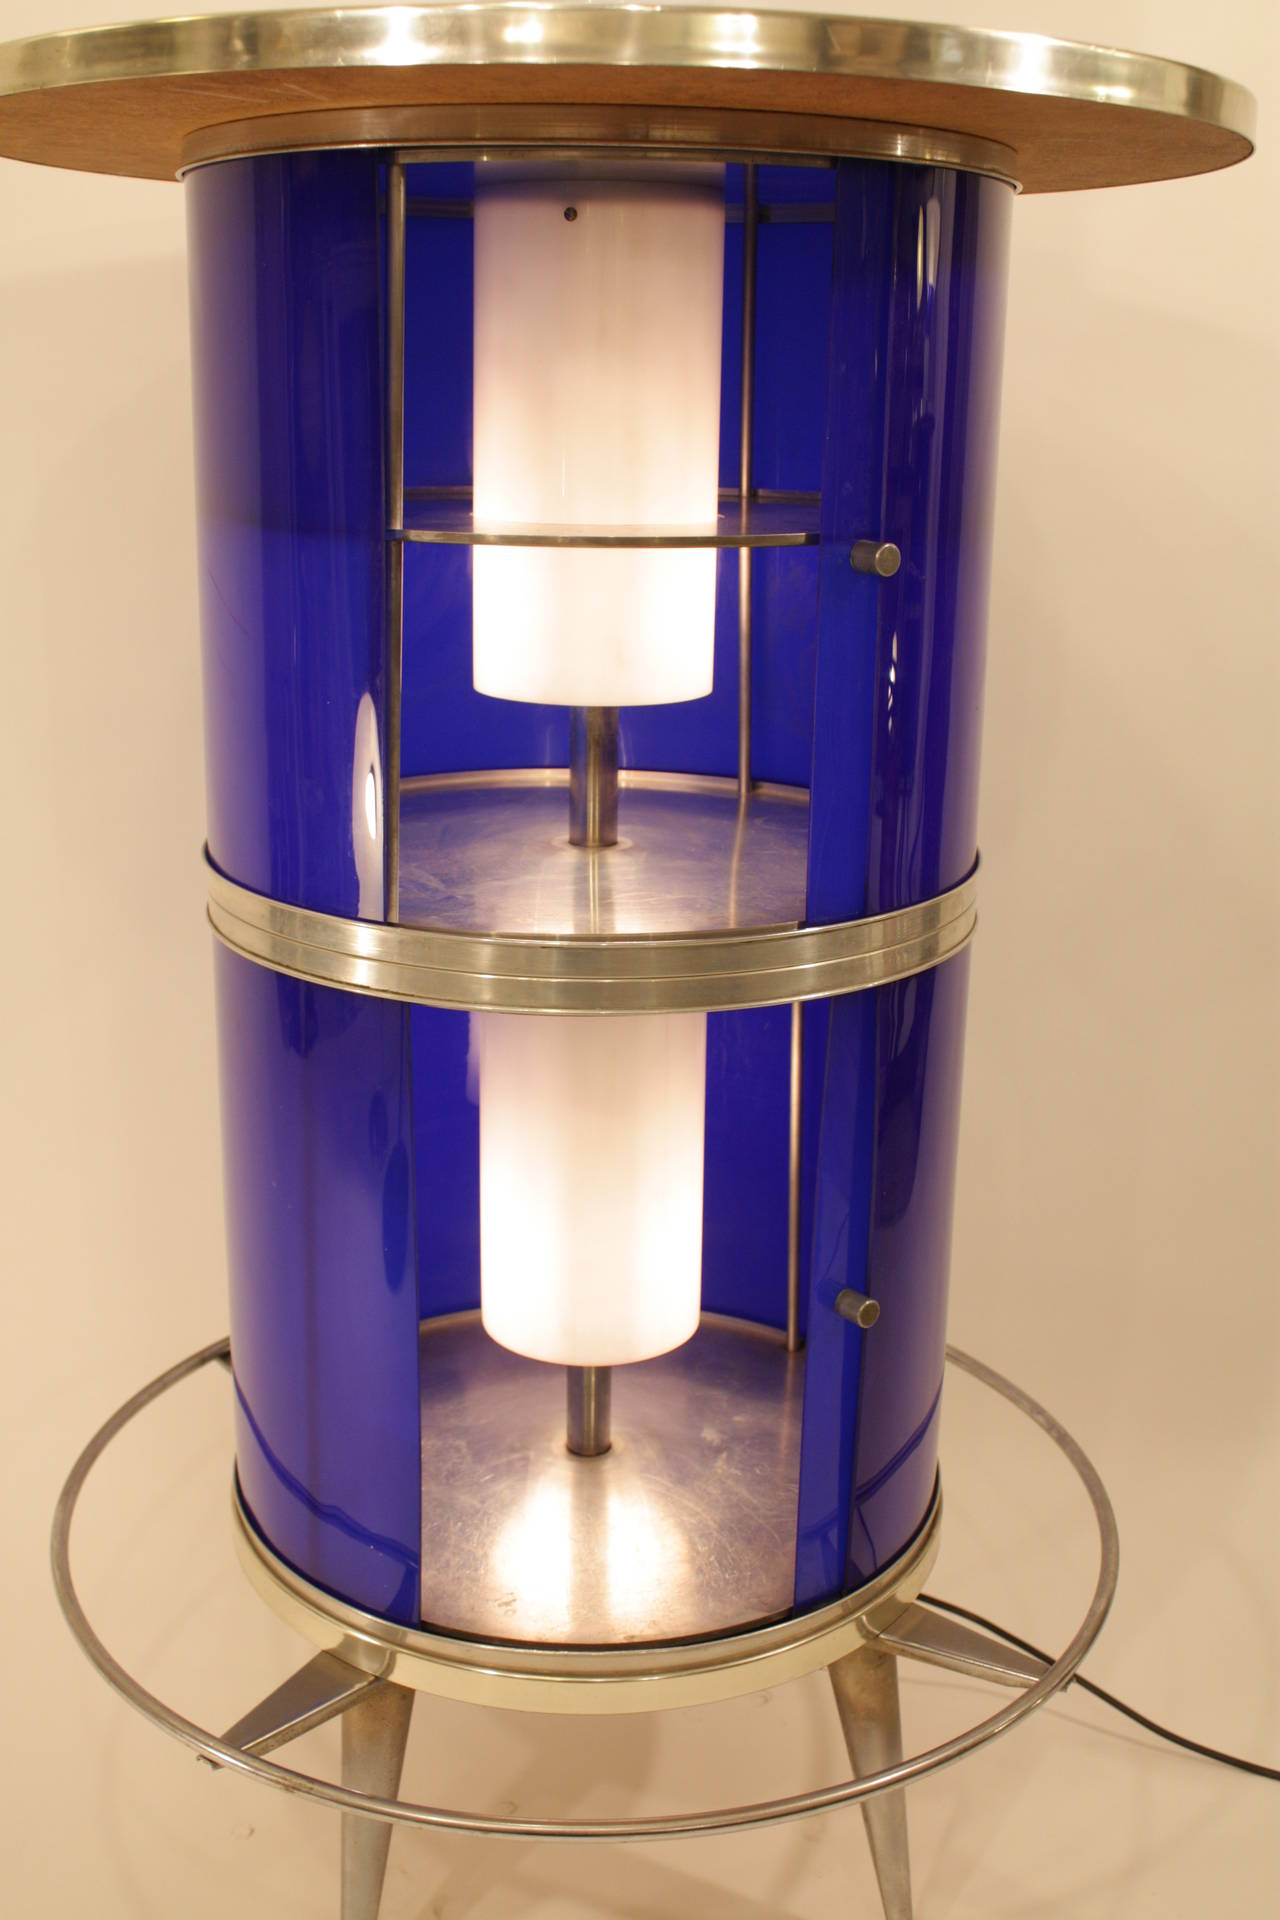 Spanish 1960s Space Age Blue and White Plexiglass Cocktails Bar with Table Lamp 6